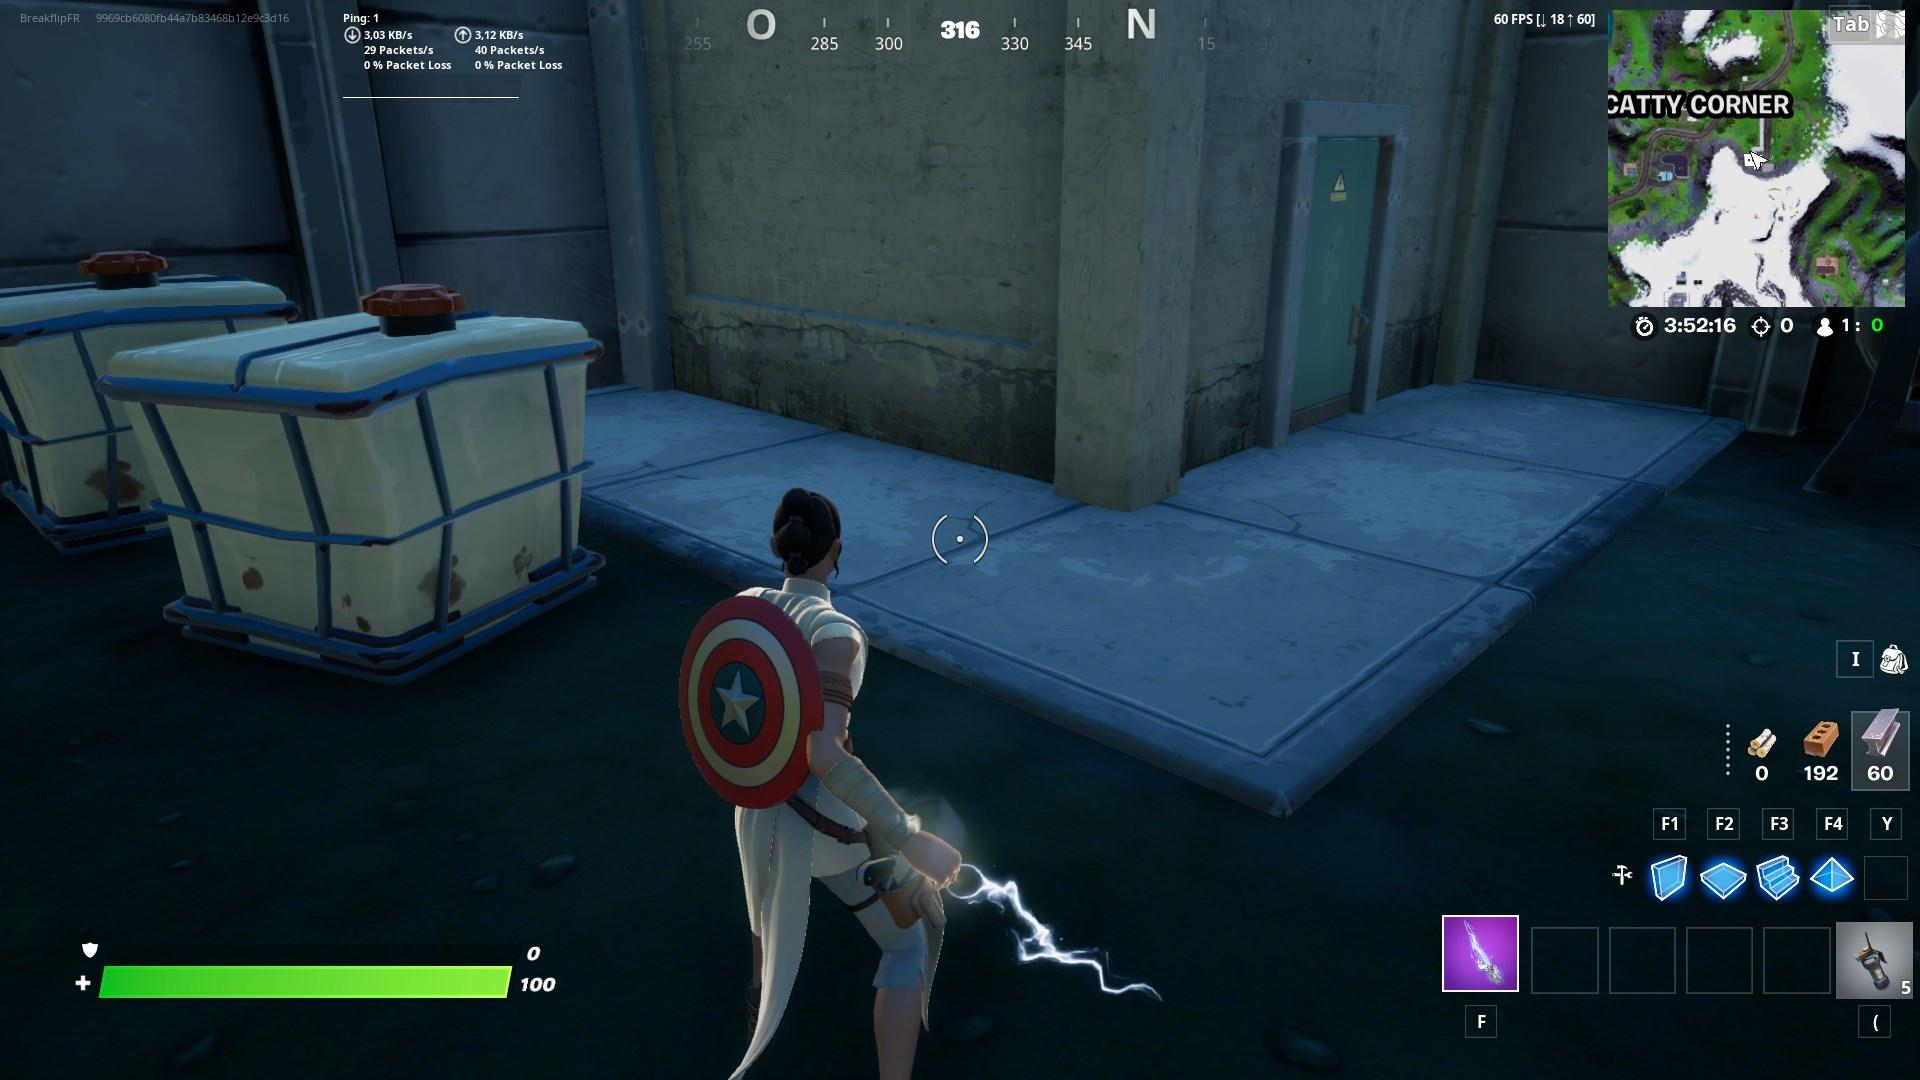 placer-mouchards-endroits-cles-fortnite-3